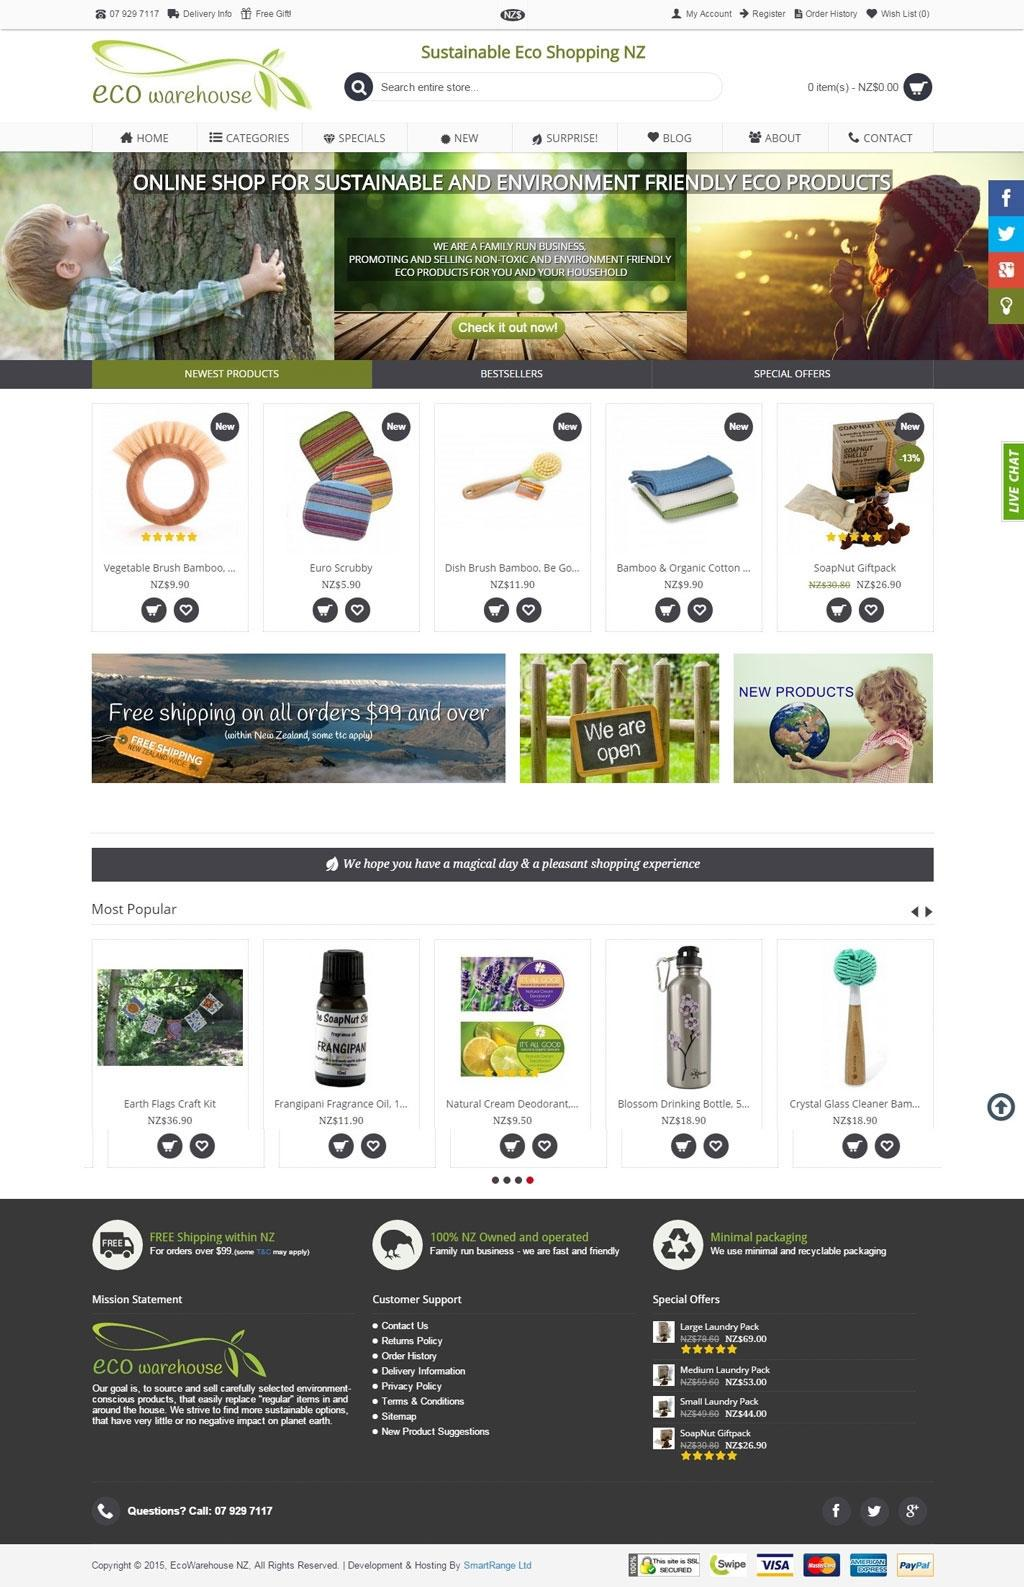 Eco Warehouse - Sustainable Eco Shopping